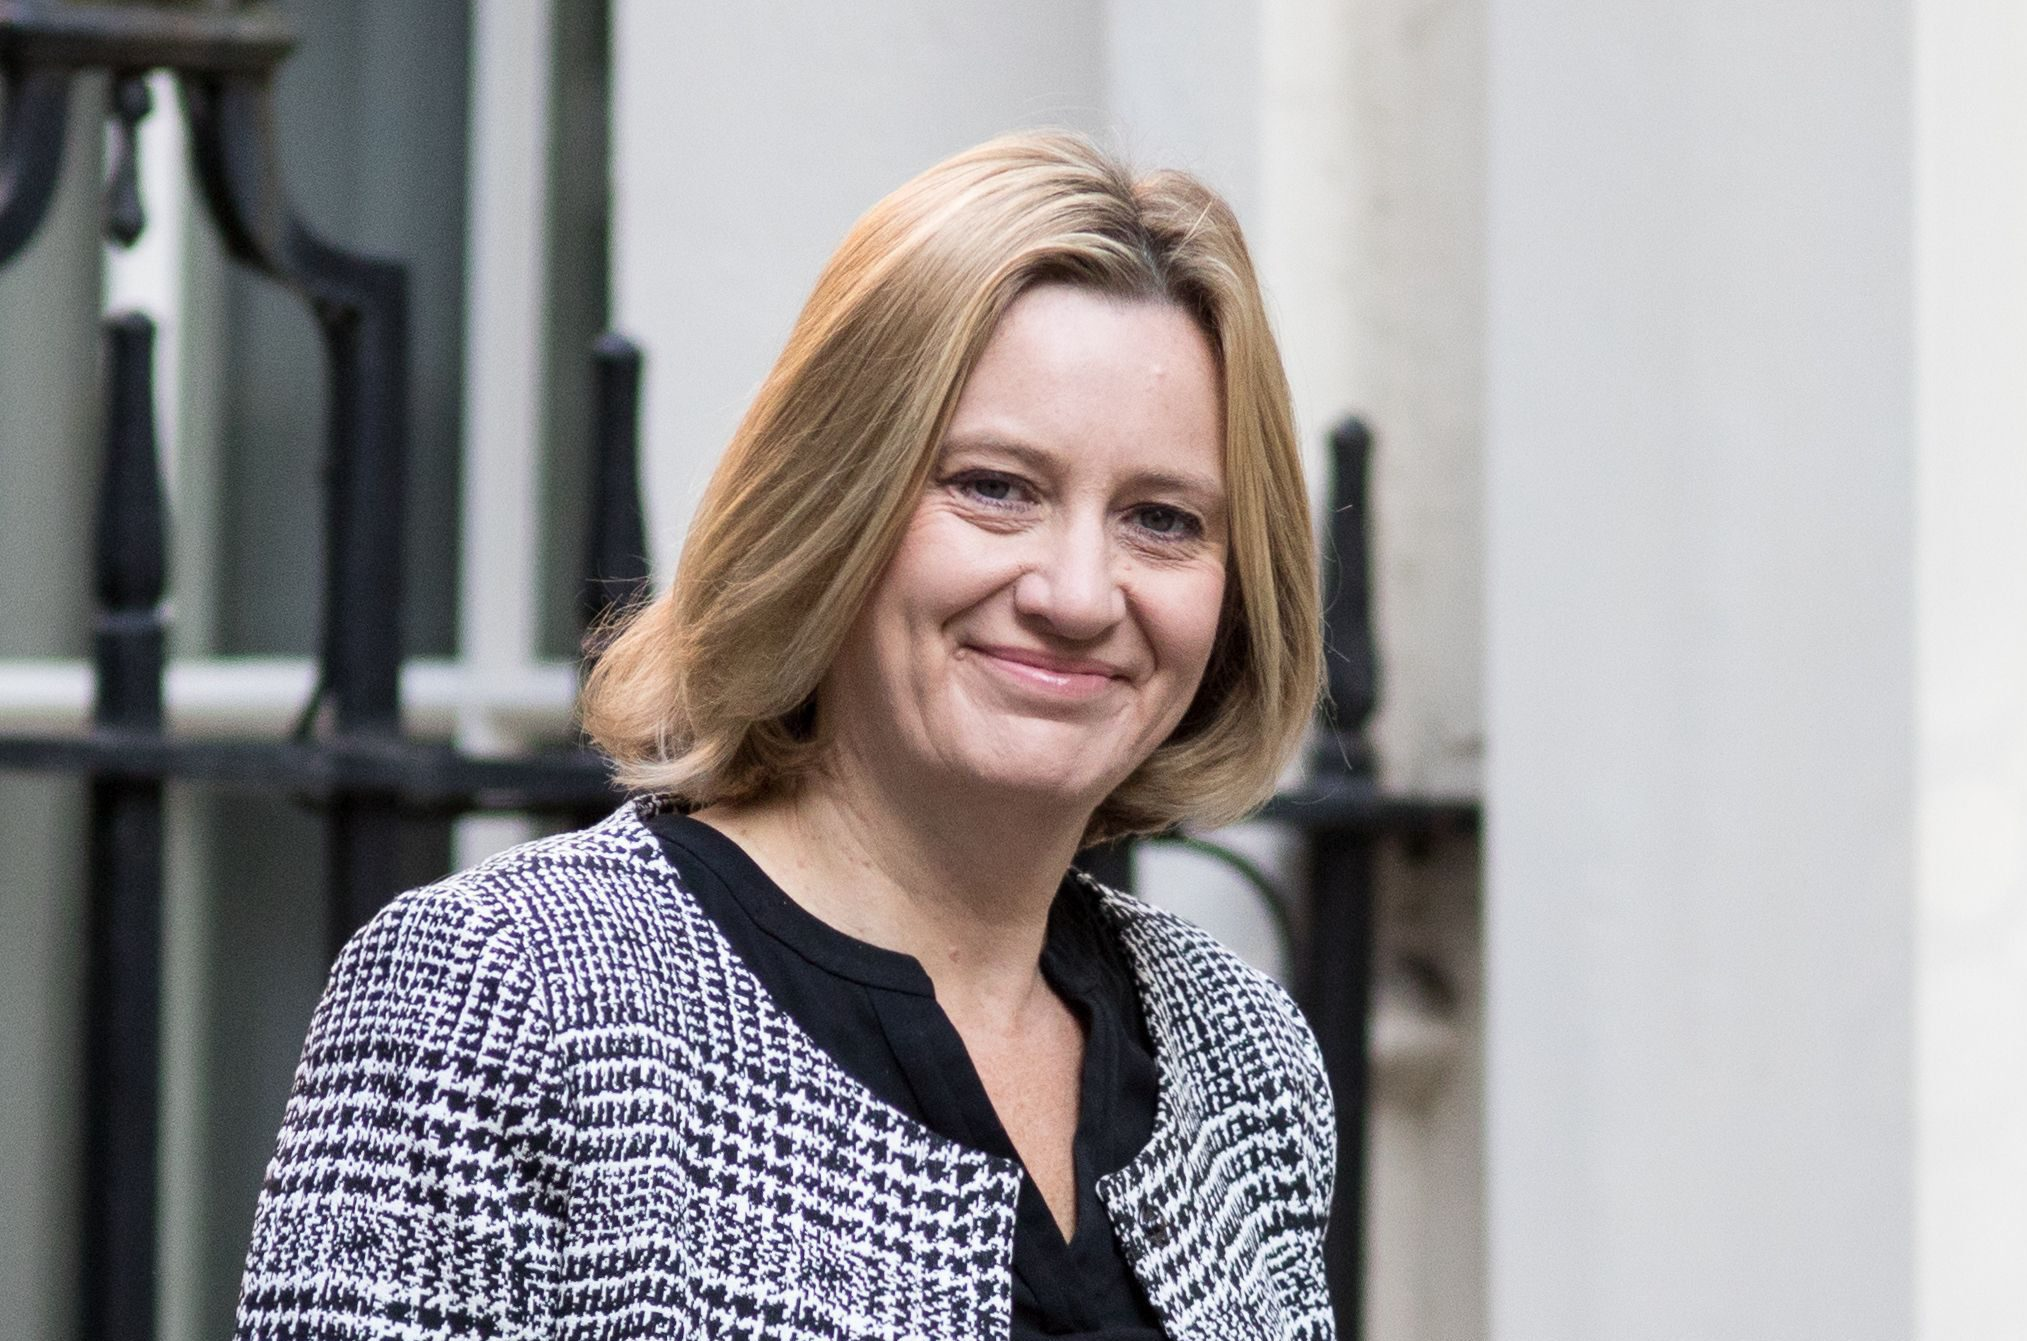 Amber Rudd 'in contempt of court' for deporting asylum seeker against judge's wishes